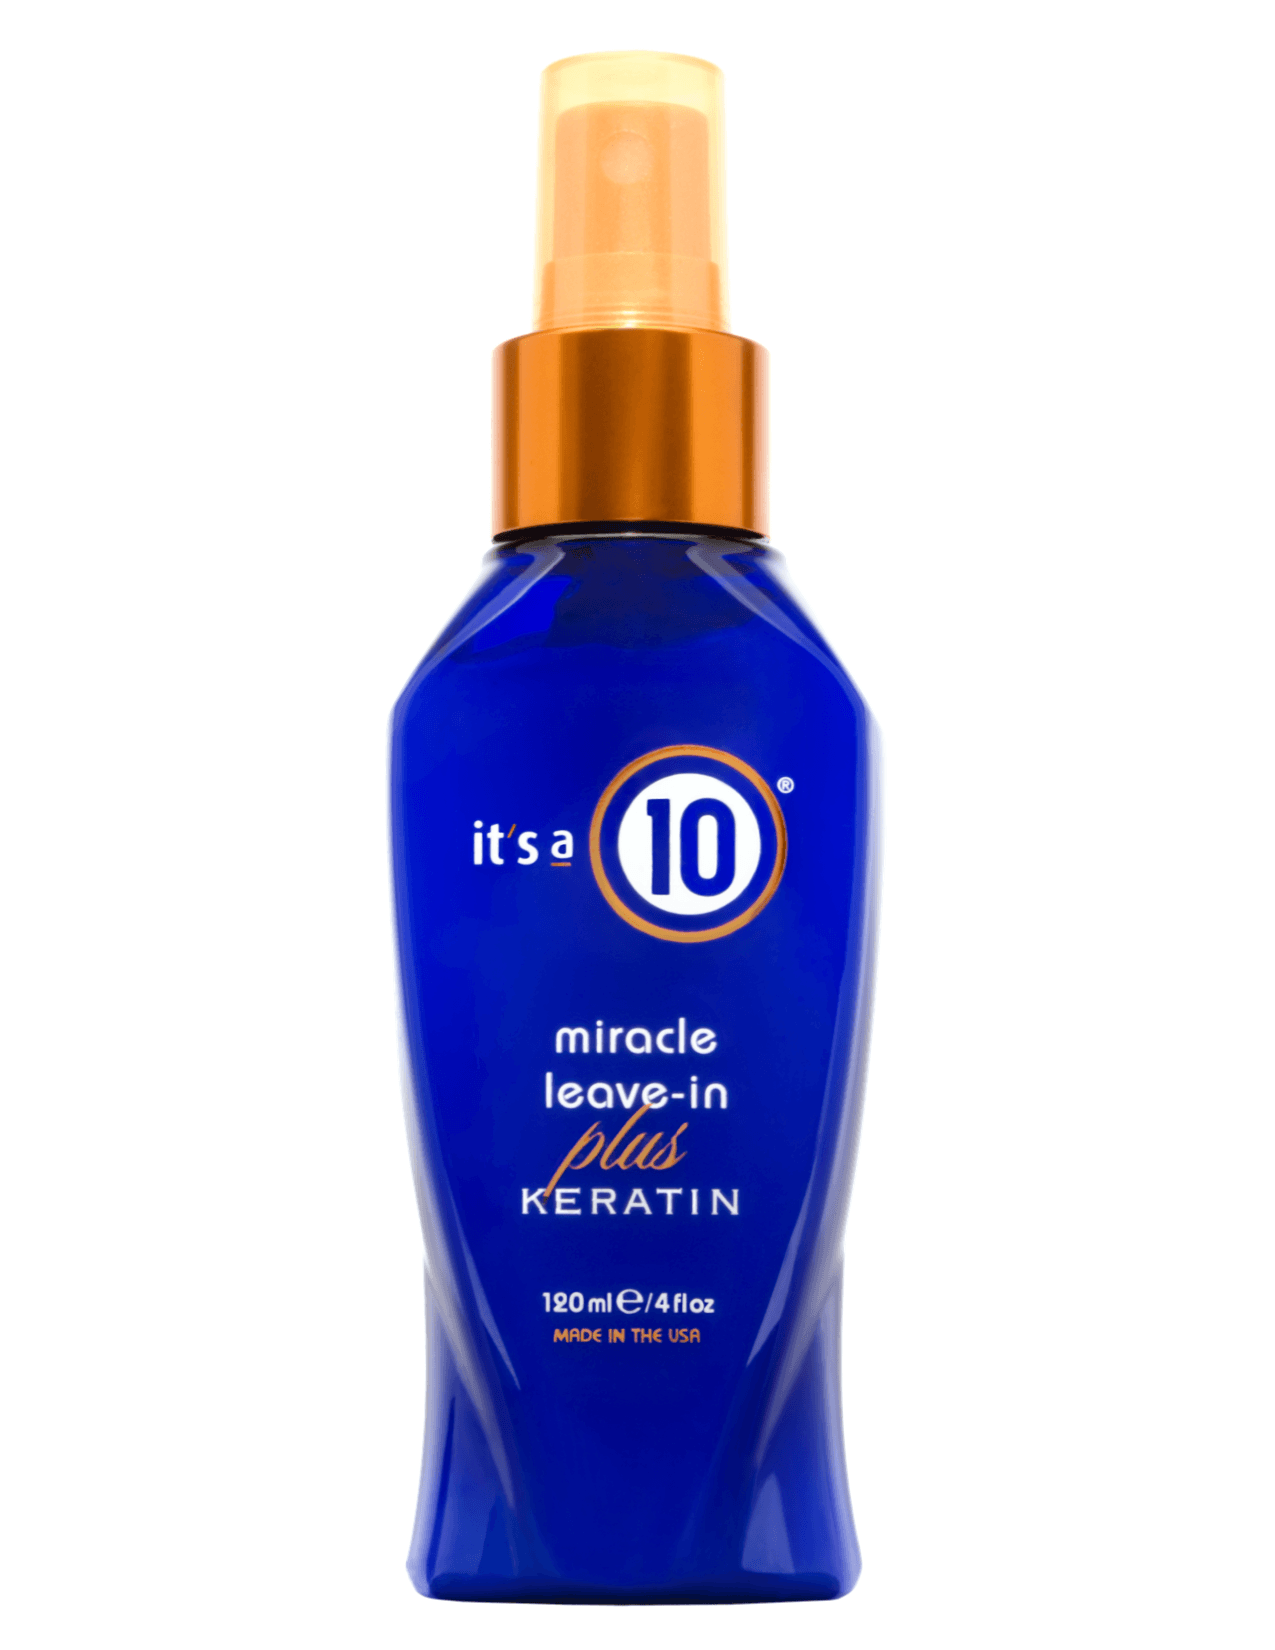 It's A 10 Miracle Leave-In Plus Keratin Spray - Jeannie: LOVE THIS. I have super dry damaged hair and always need to moisturize it. As soon as I come out of the shower I spray it in and leave it! This allows me to not feel guilty about using the not-so-moisturizing hotel shampoo and conditioner.$12.33